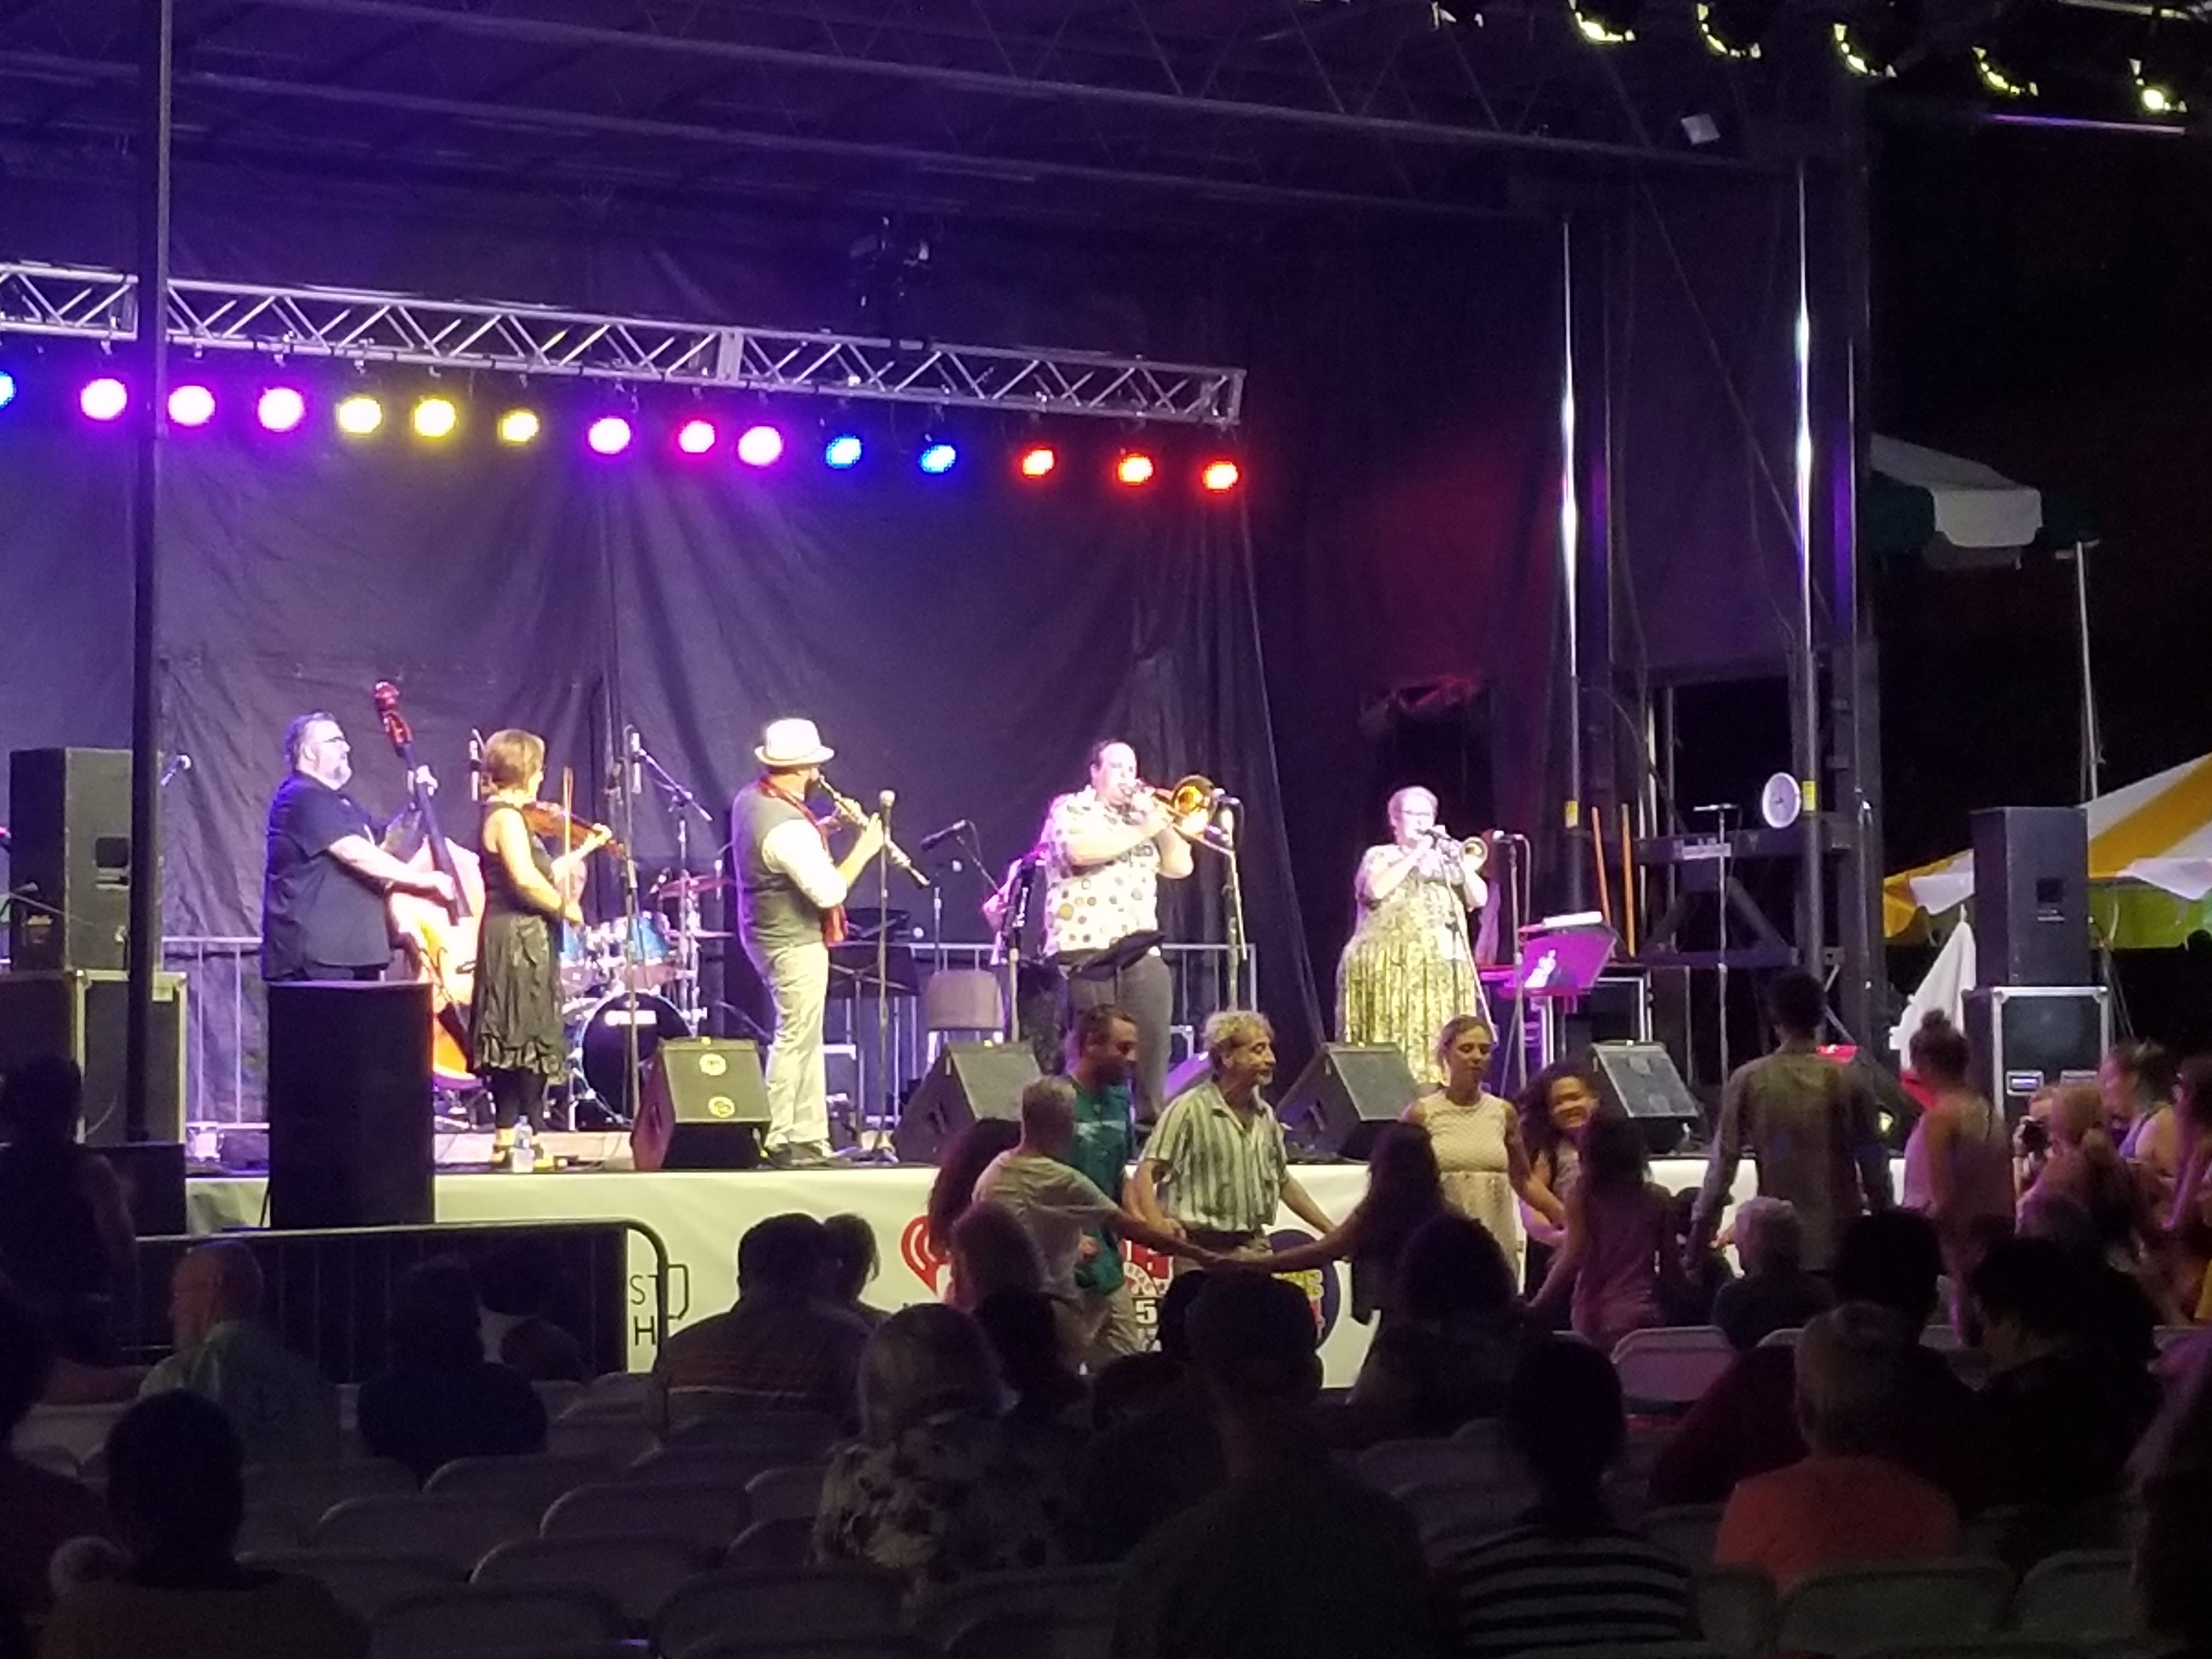 Michael Winograd & the Honorable Mentshn perform at the National Folk Festival in Salisbury, Maryland on Friday, Sept. 7, 2018.